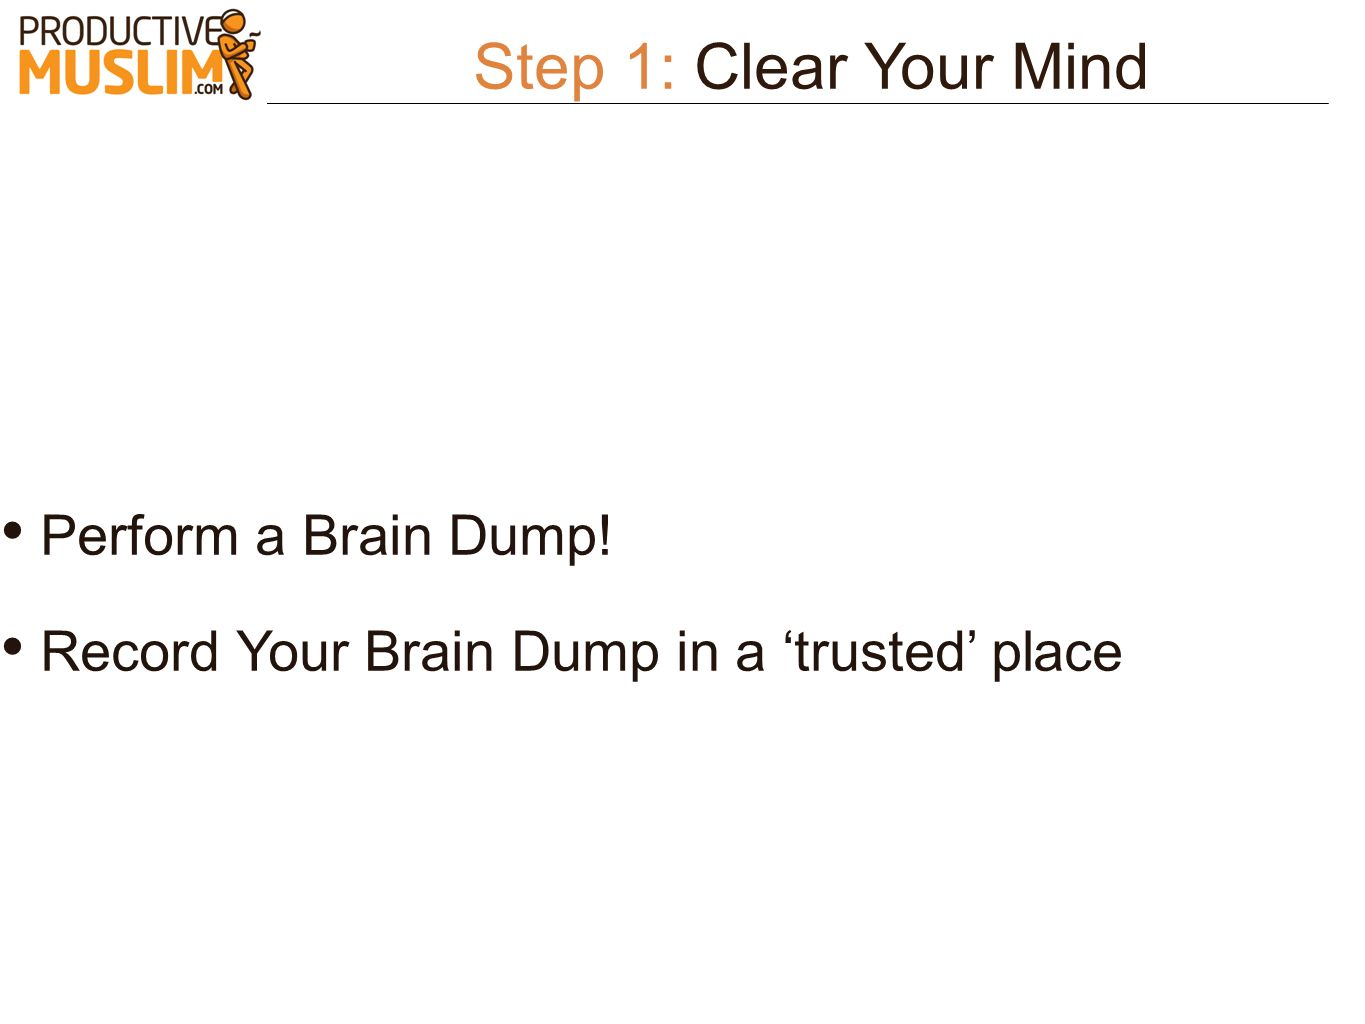 Step 1: Clear Your Mind Perform a Brain Dump!